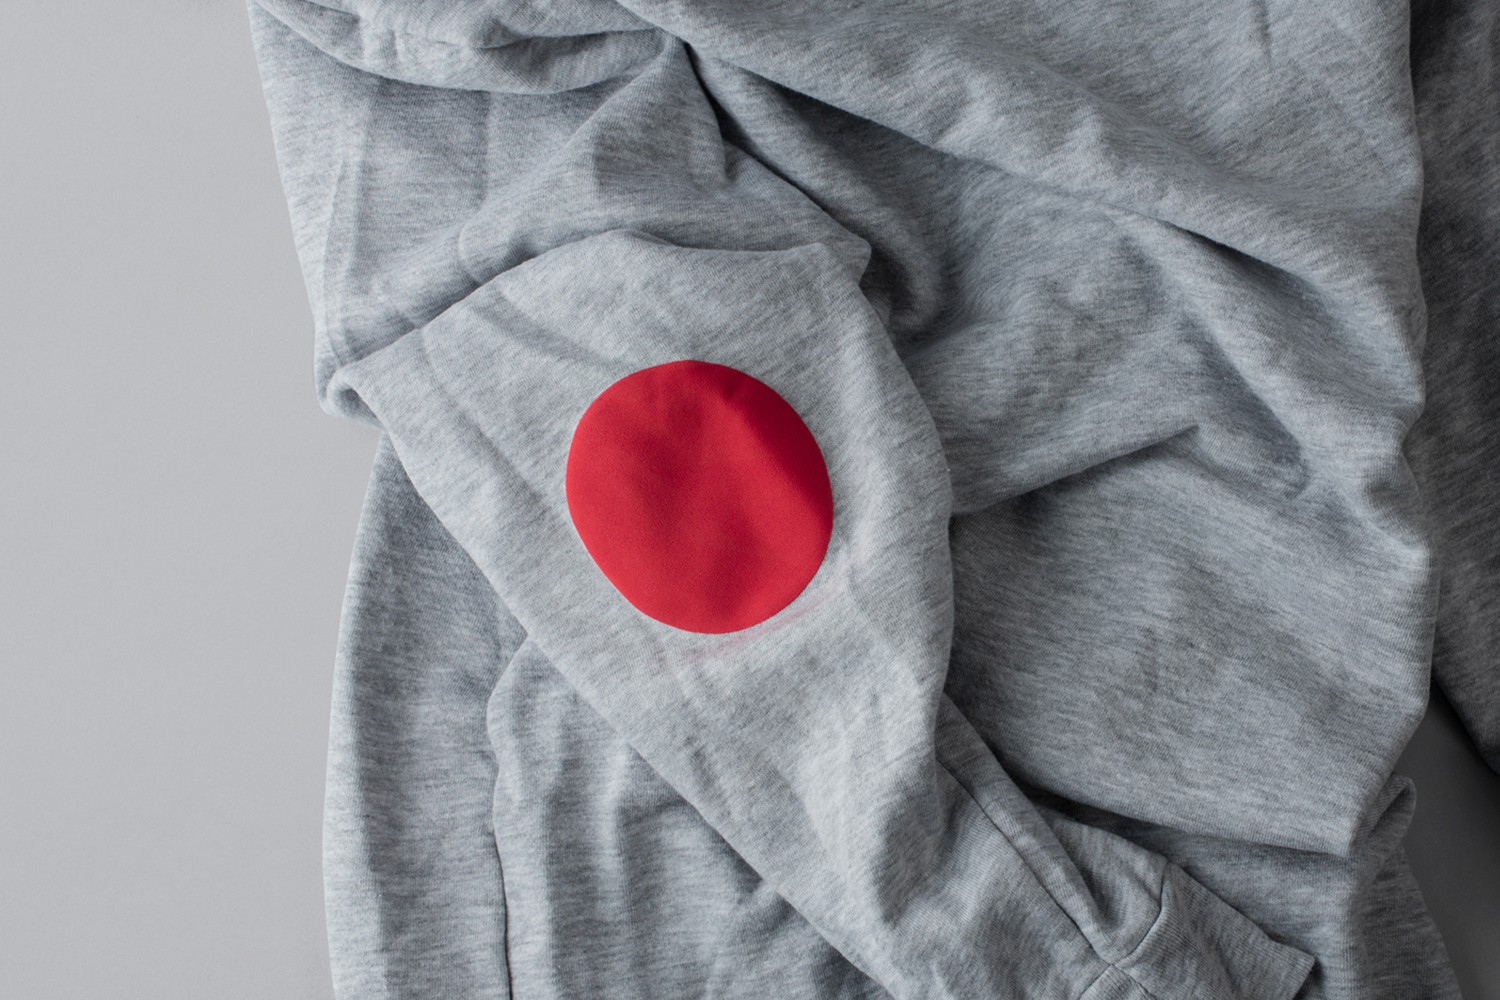 Branded hoodie designed by Bunch for San Francisco based tech start-up Capt